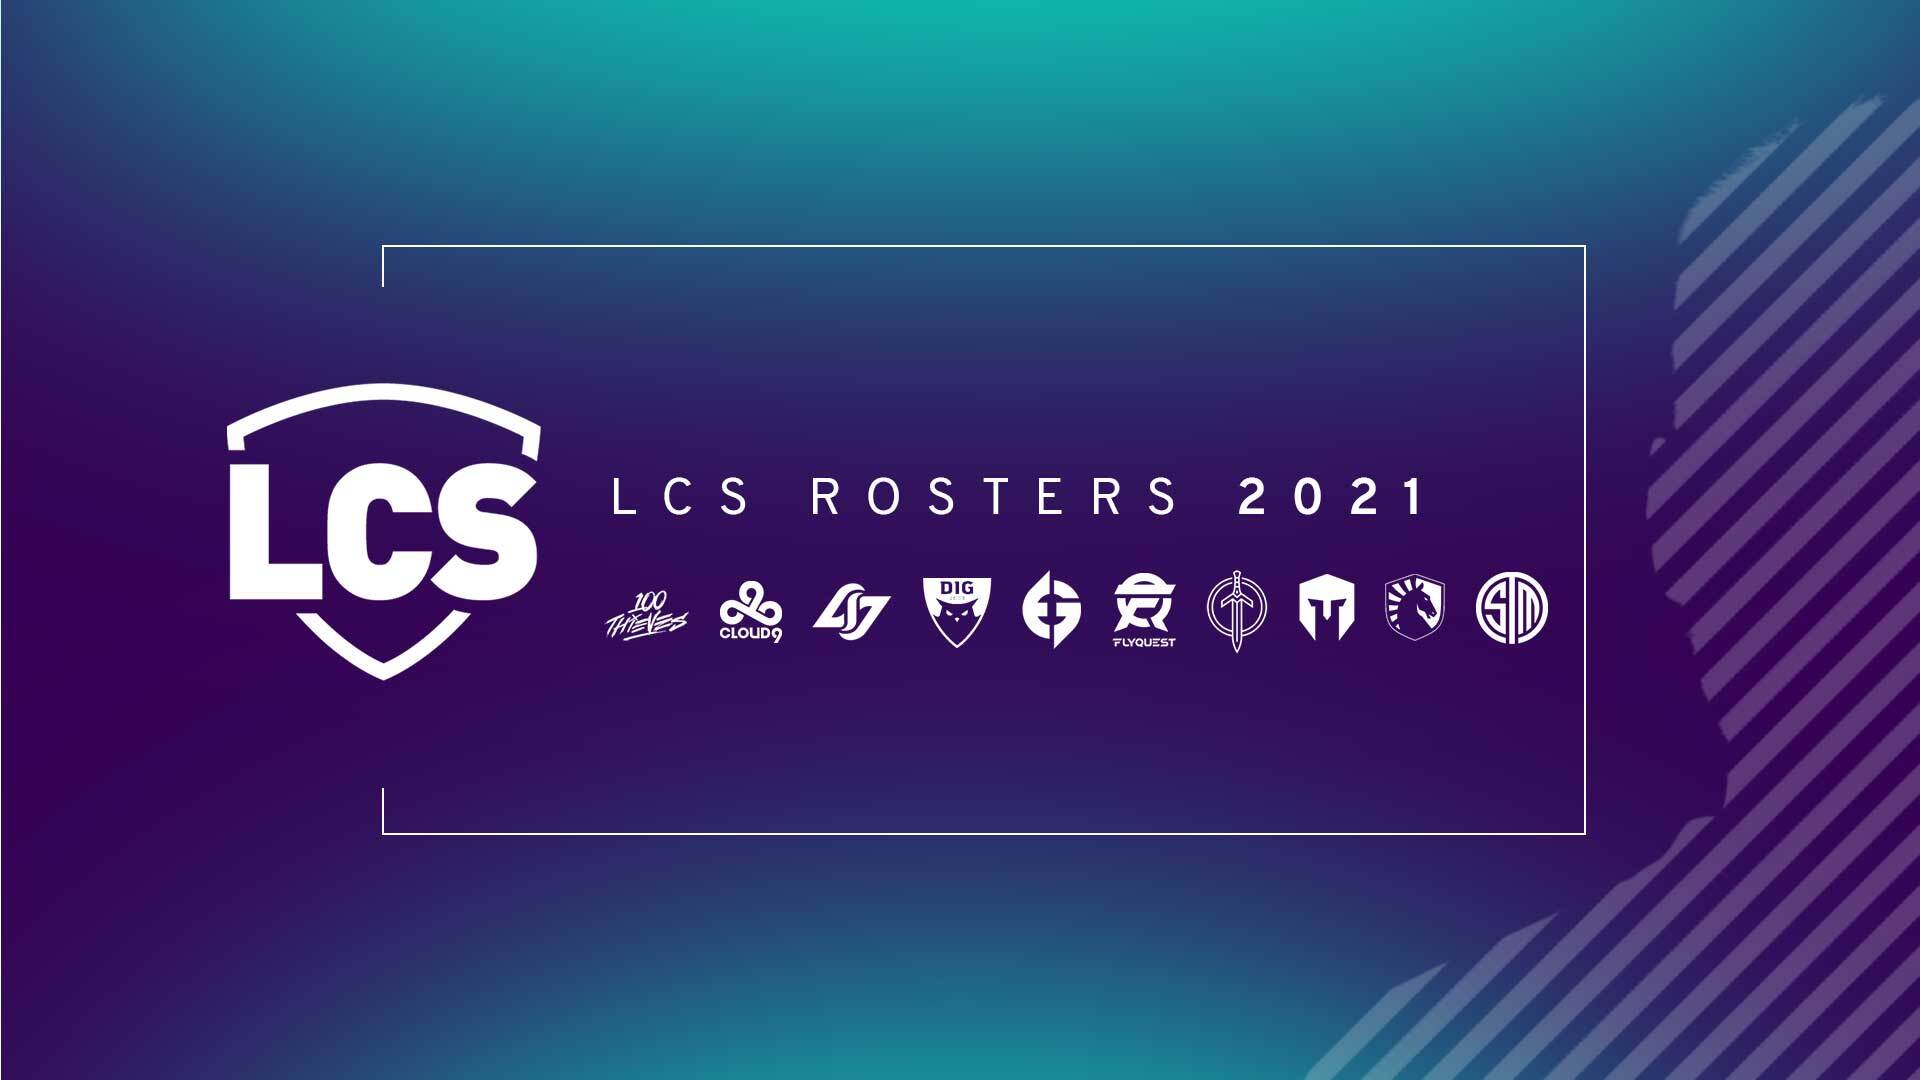 Official LCS Rosters 2021